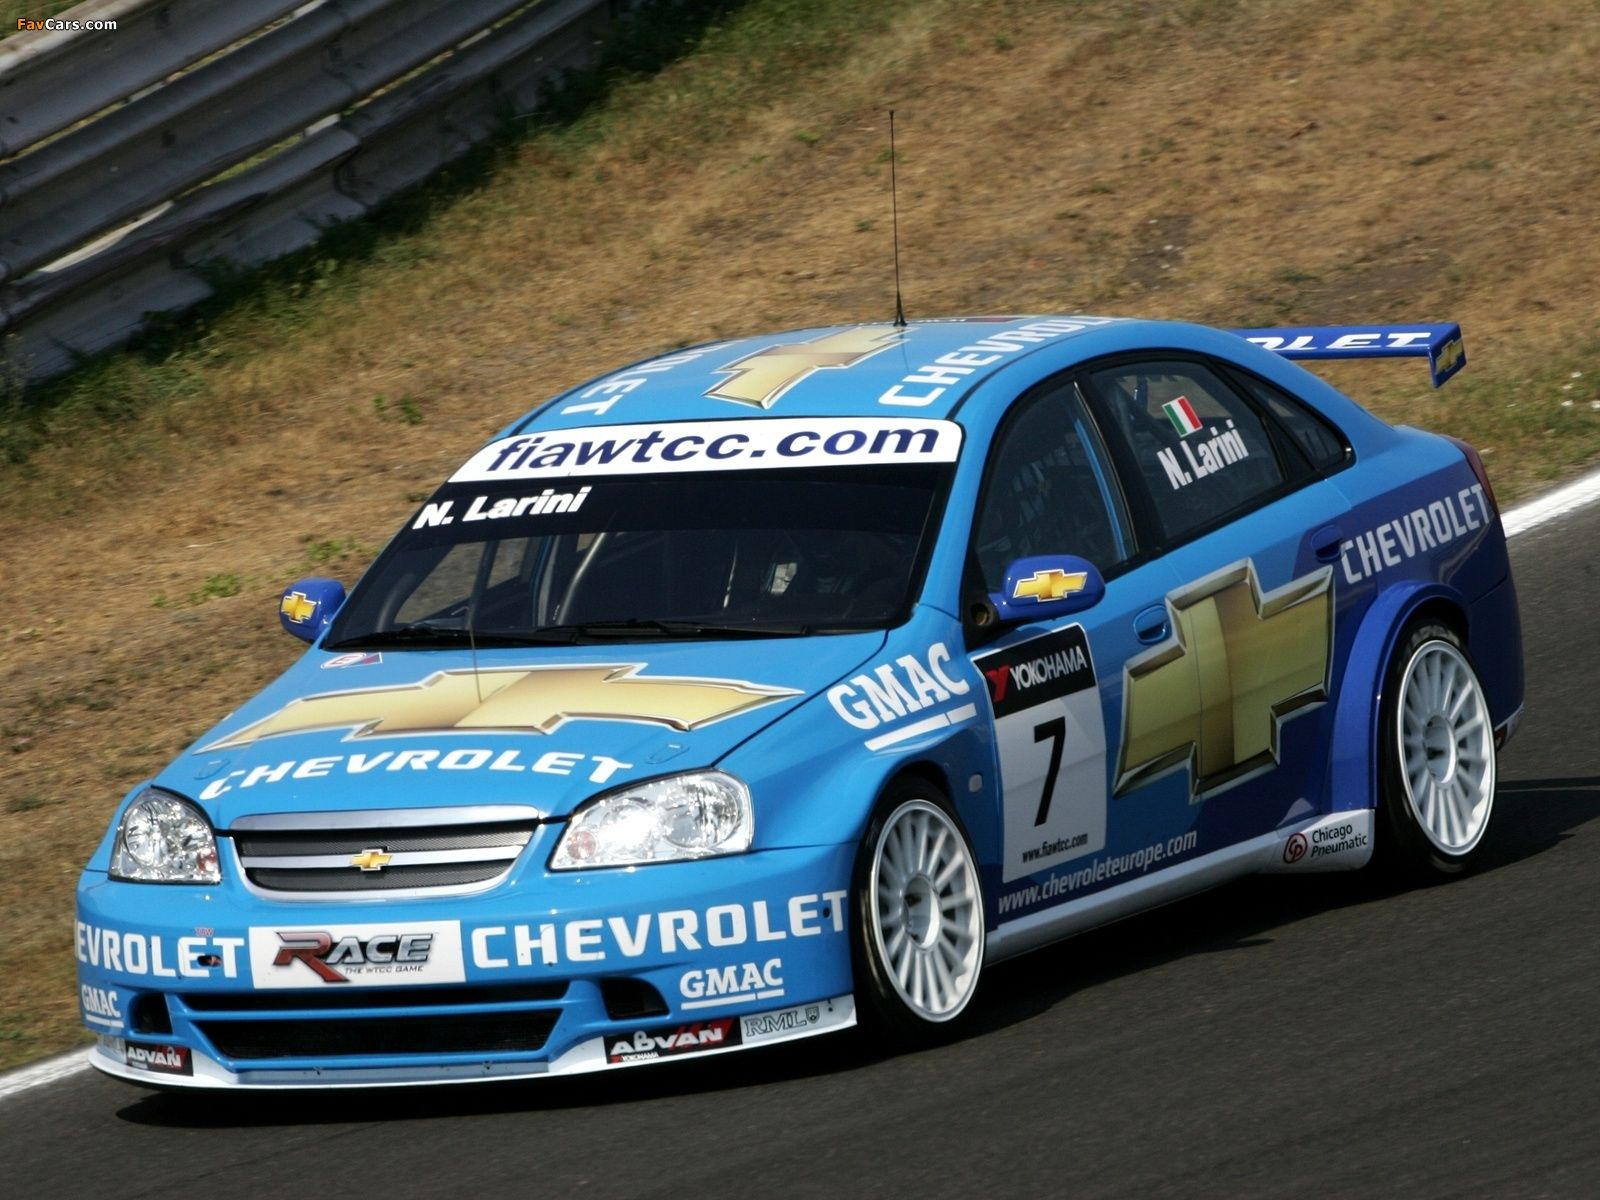 Images Of Chevrolet Lacetti Wtcc 2007 Chevrolet Touring Car Racing Car Chevrolet